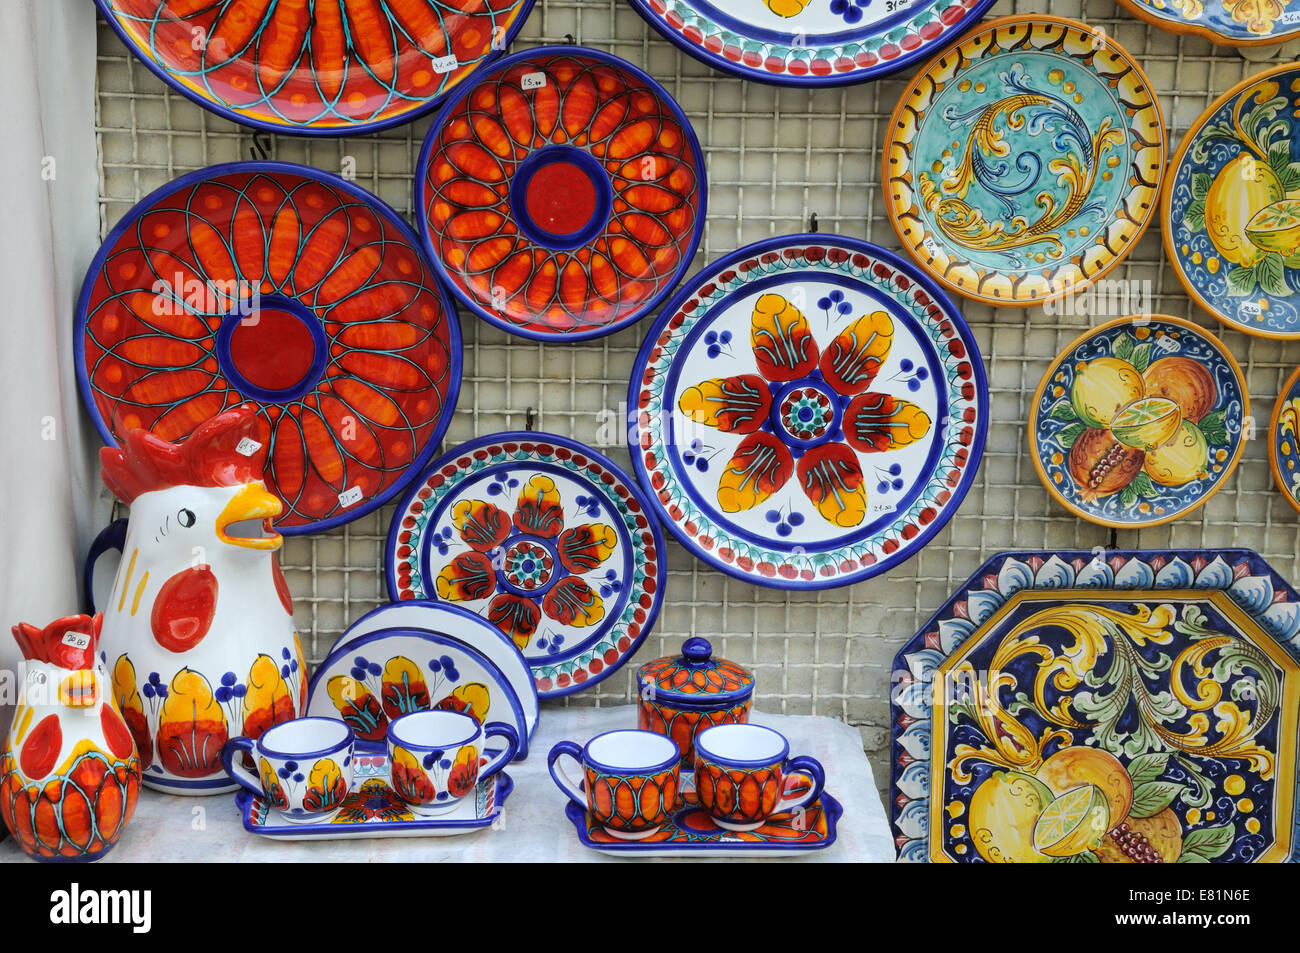 Typical brightly painted Sicilian pottery outside a gallery Taormina Sicily italy - Stock Image